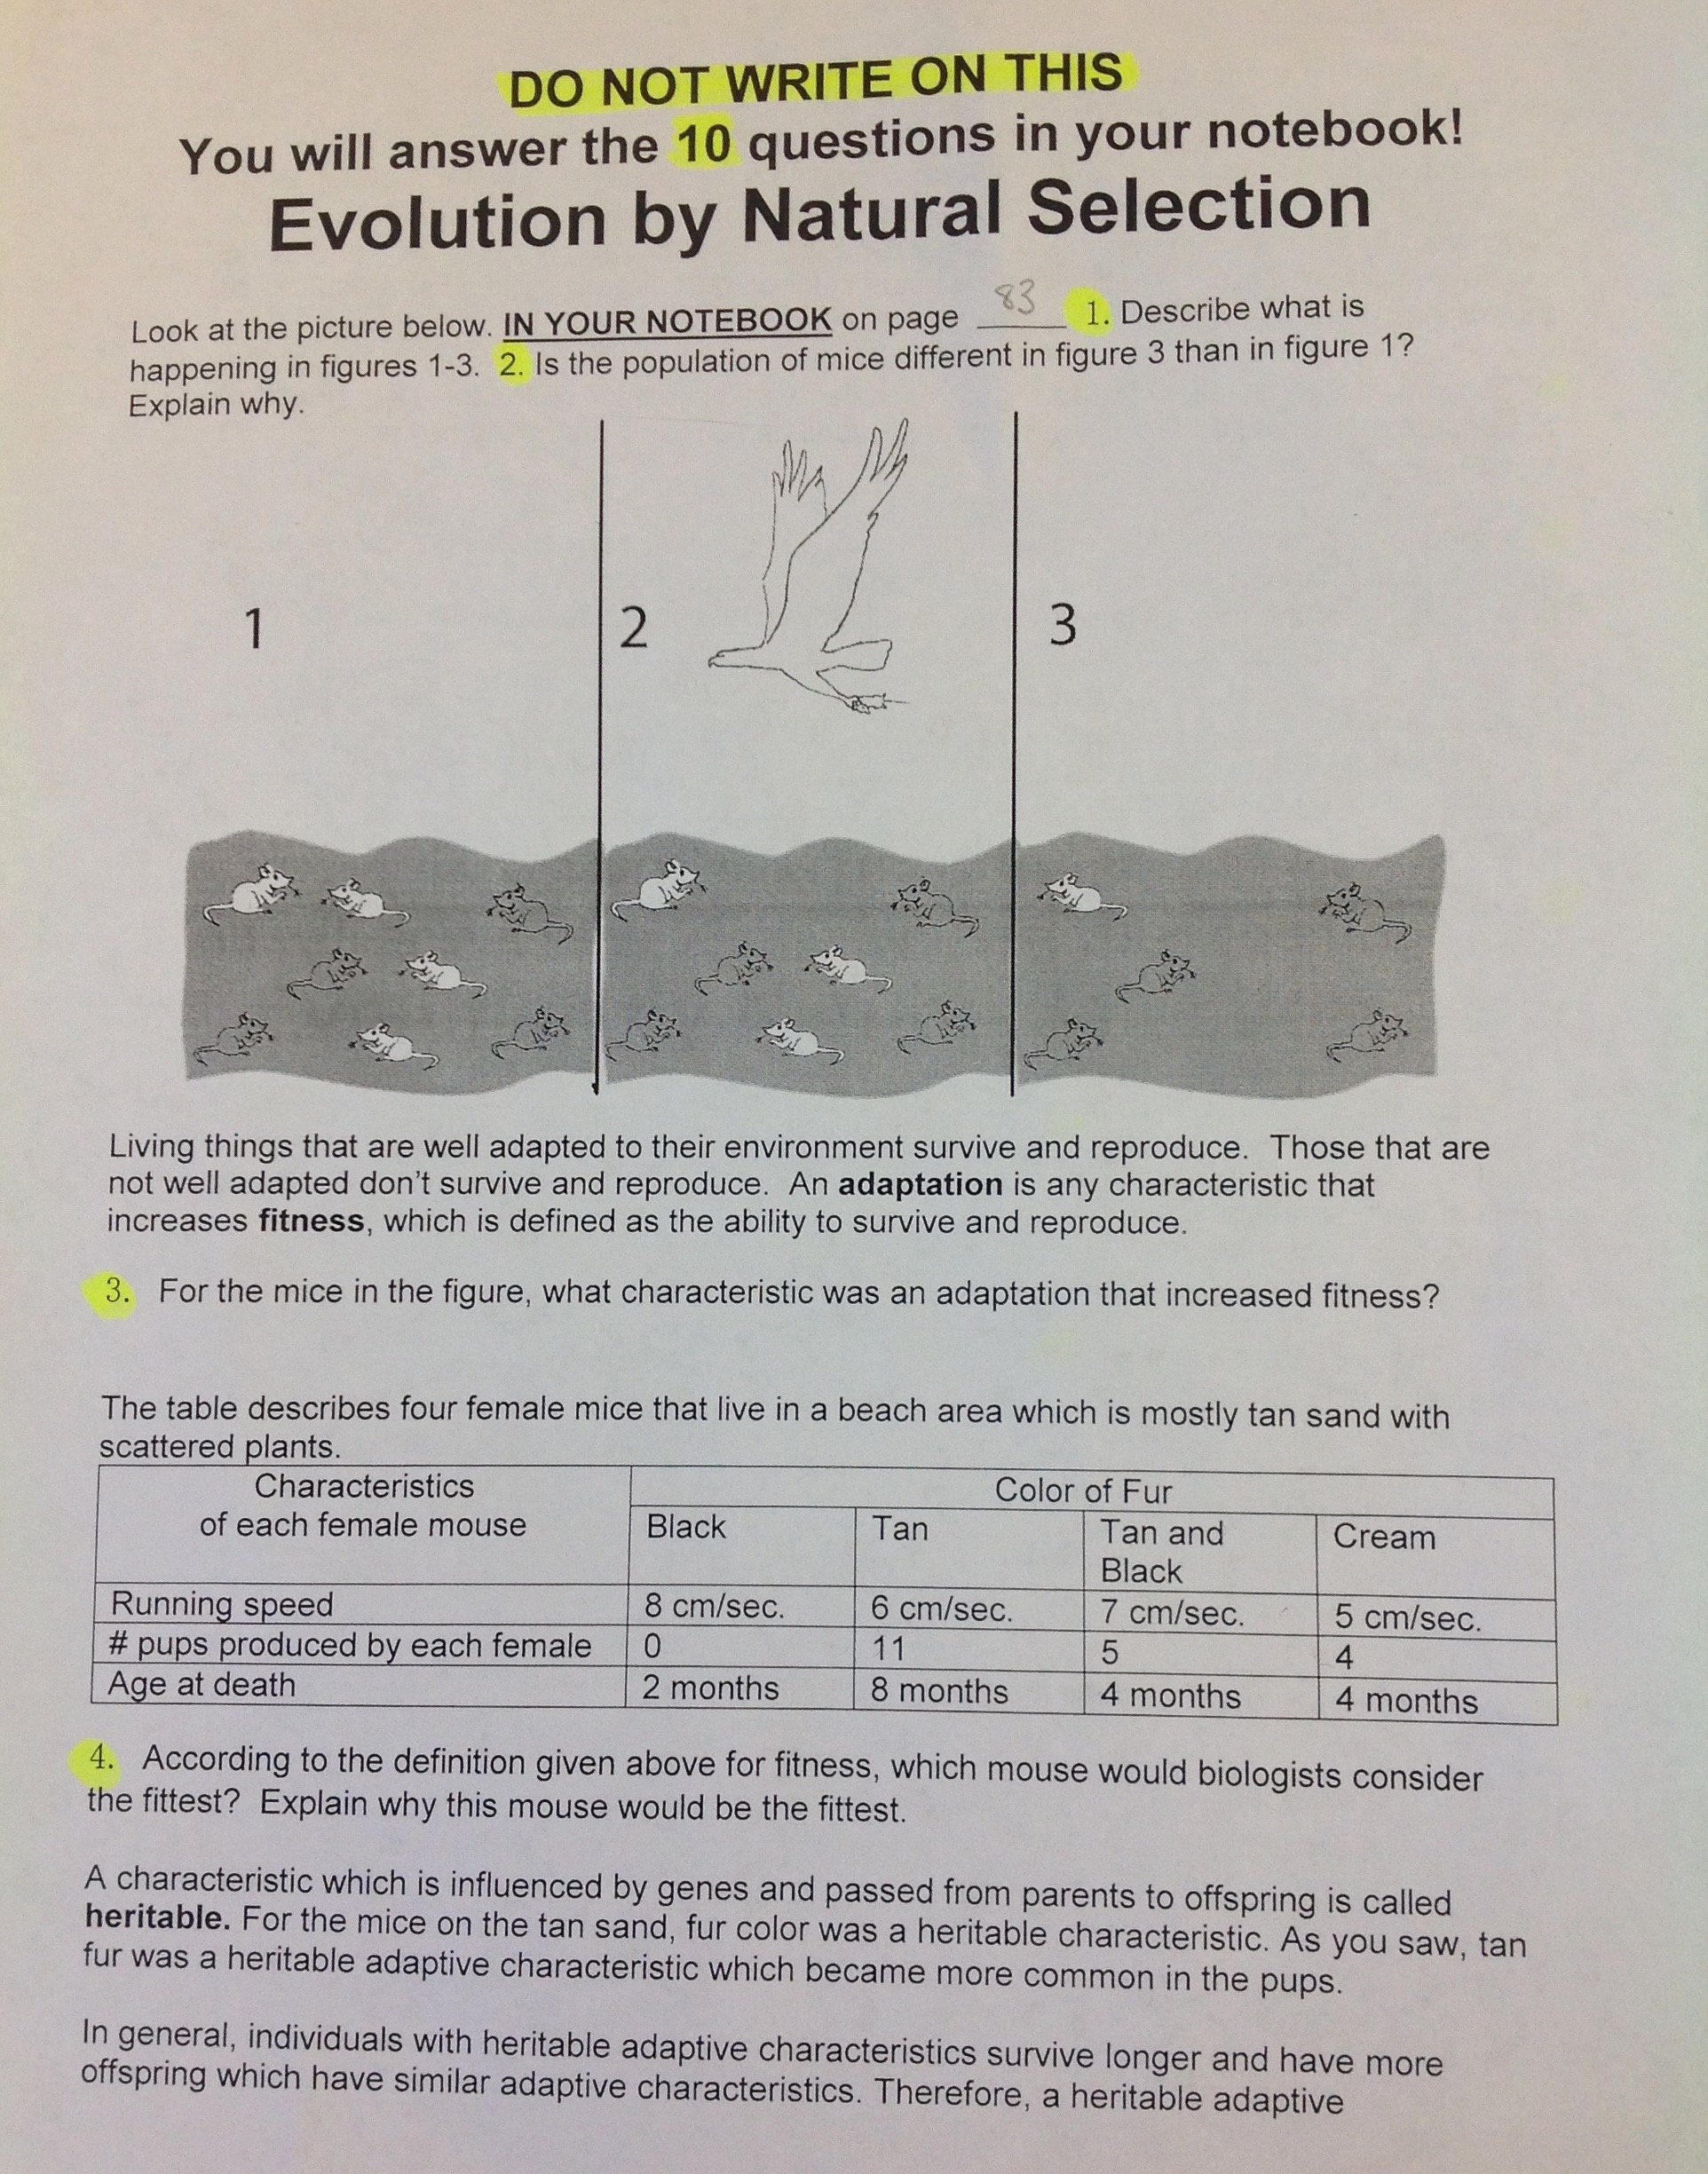 Evolution and Natural Selection Worksheet Awesome origins Of Life Natural Selection & Evolution